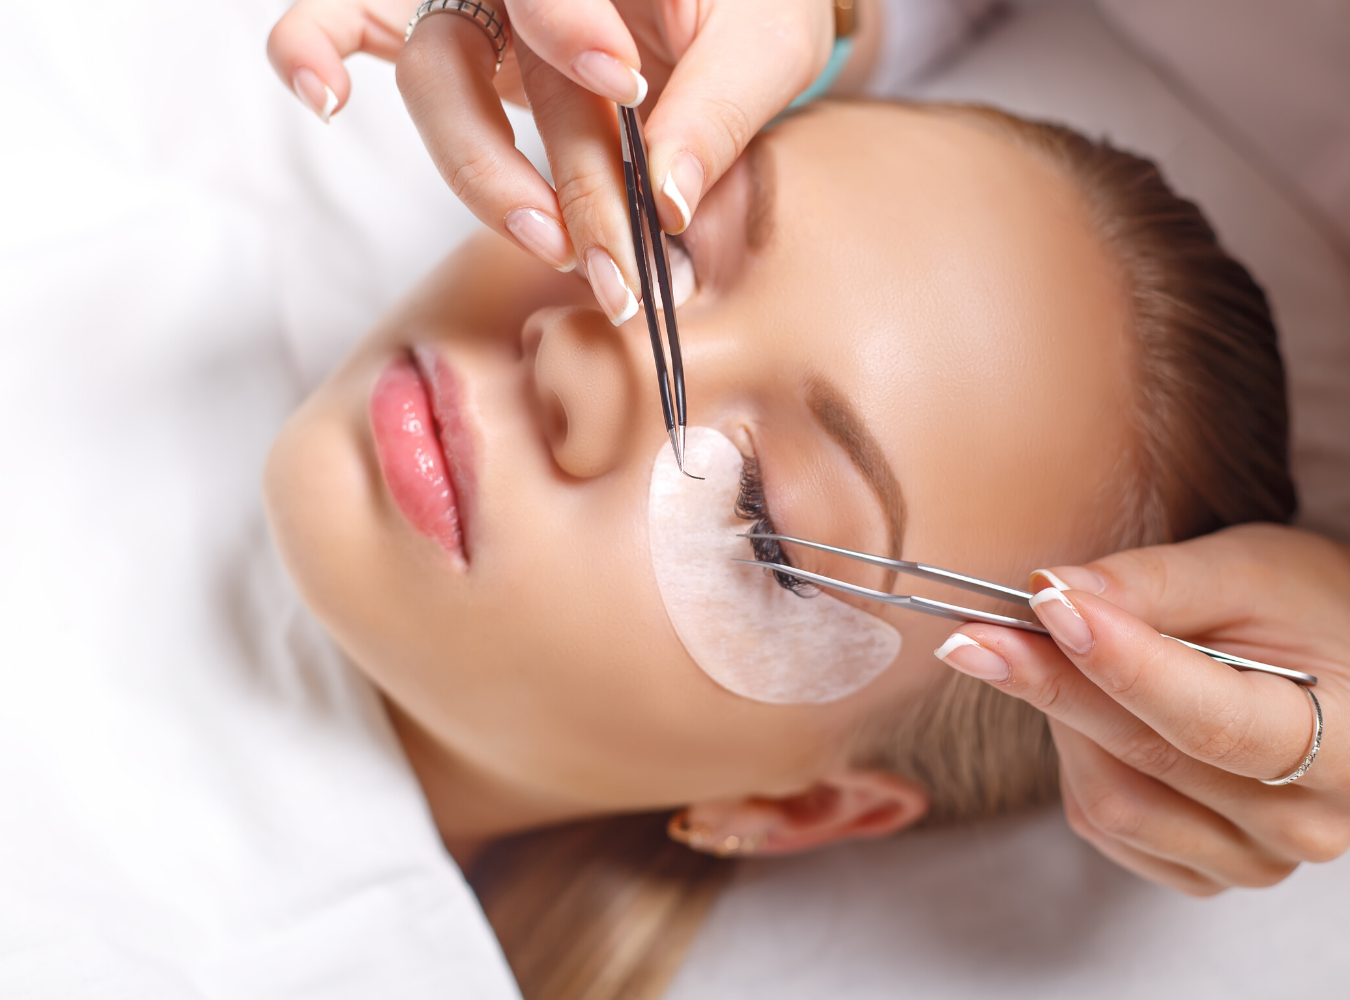 Performing an Eyelash Extension service on a woman